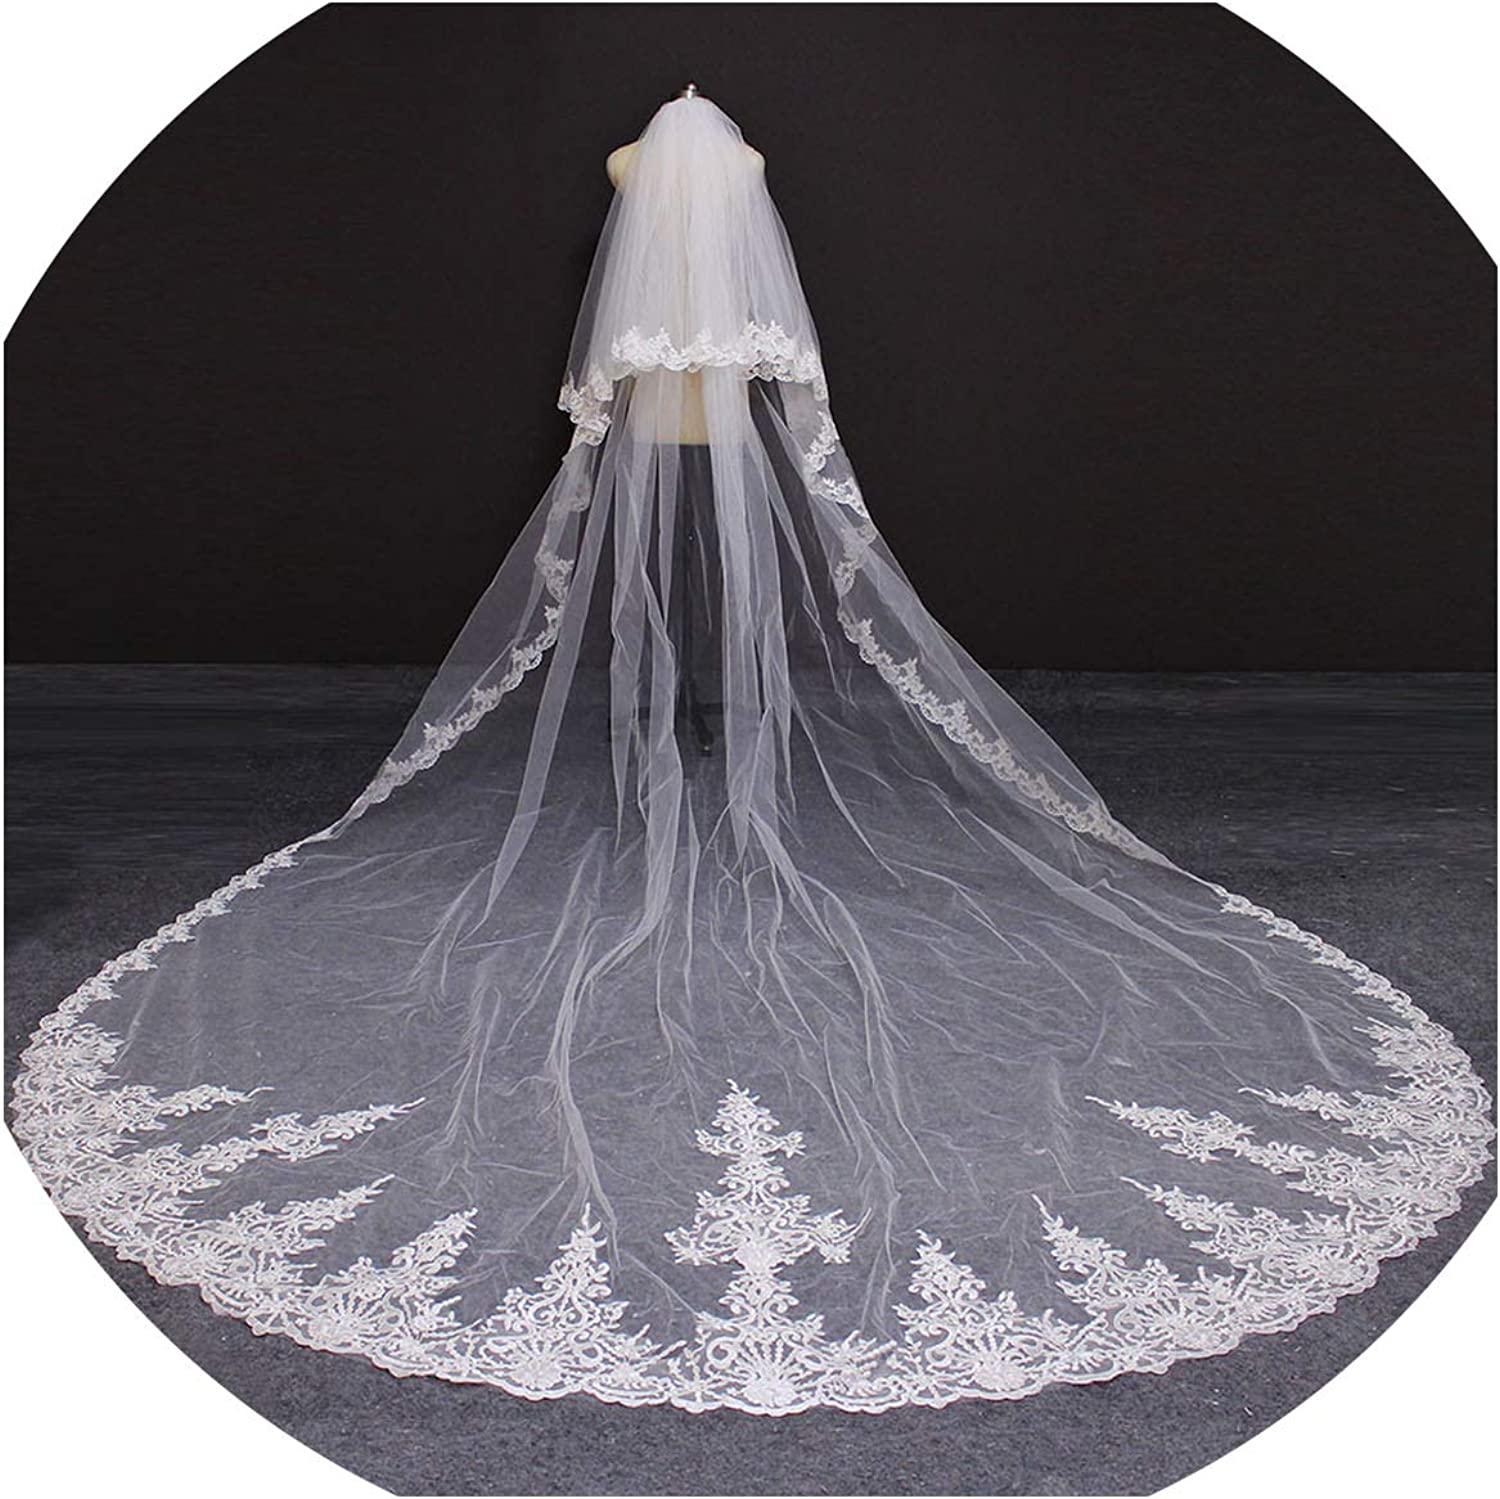 2019 2 Layers Lace Edge 4 Meters Wedding Veil With bluesher Cover Face White Ivory Bridal Veil With Comb,White